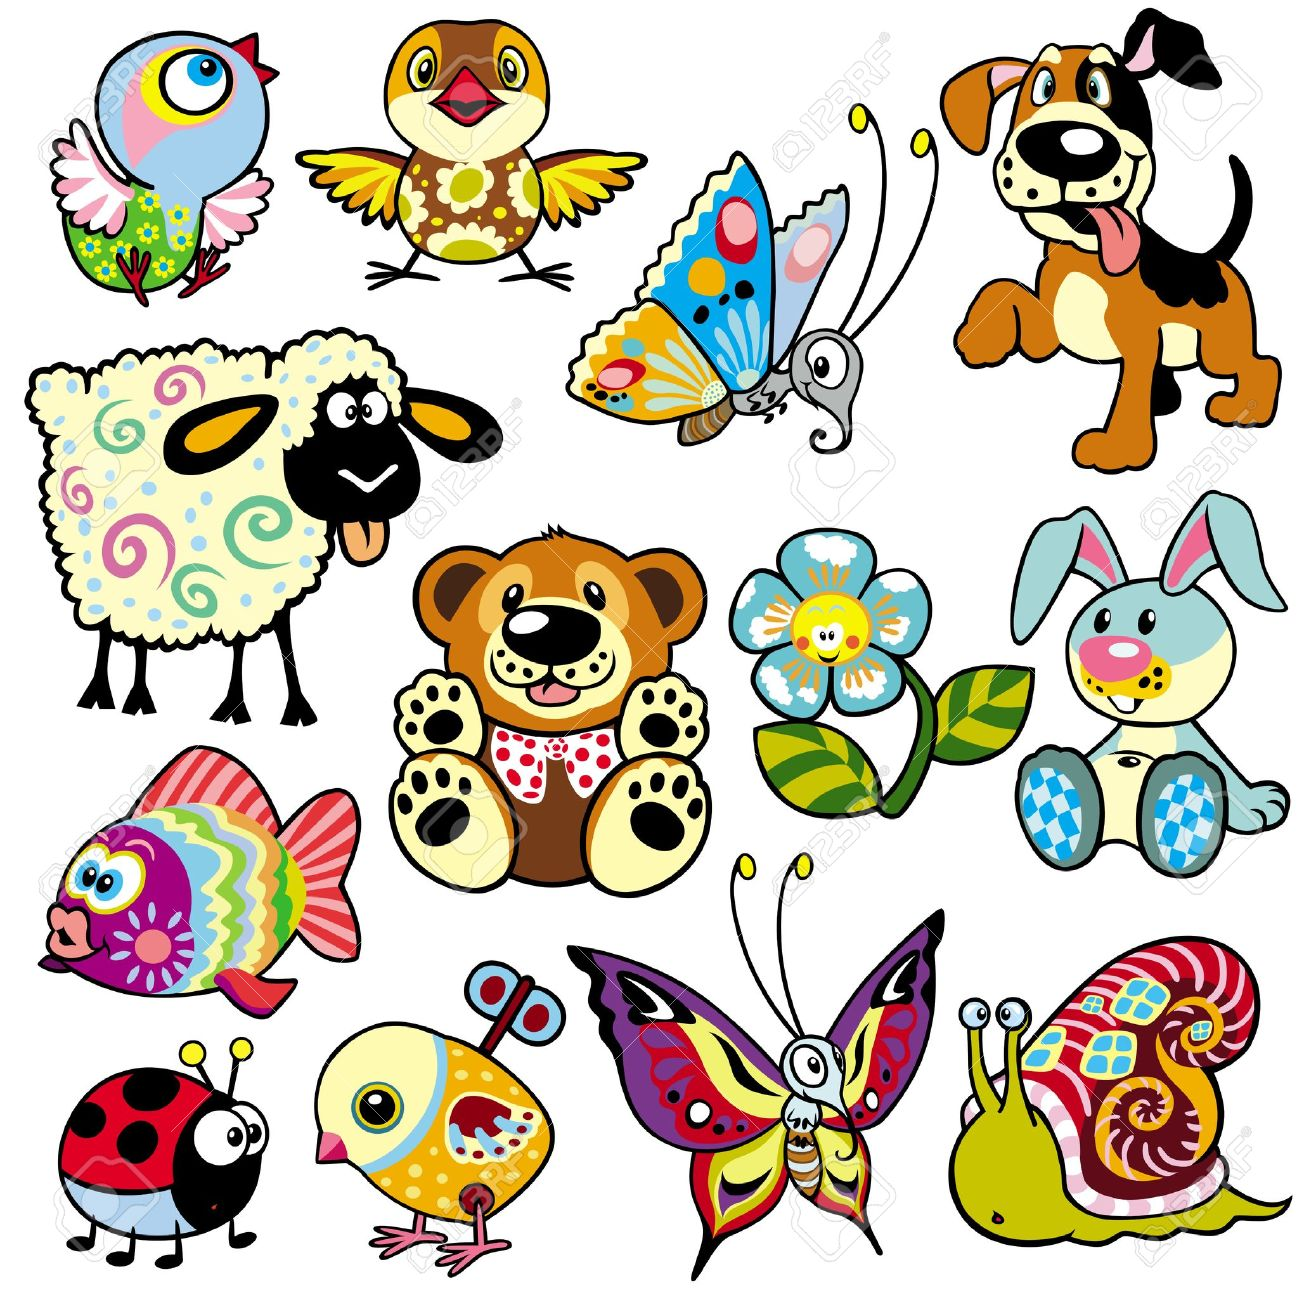 set with cartoon animals and toys for babies and little kids stock vector 21734942 - Kids Cartoon Animals